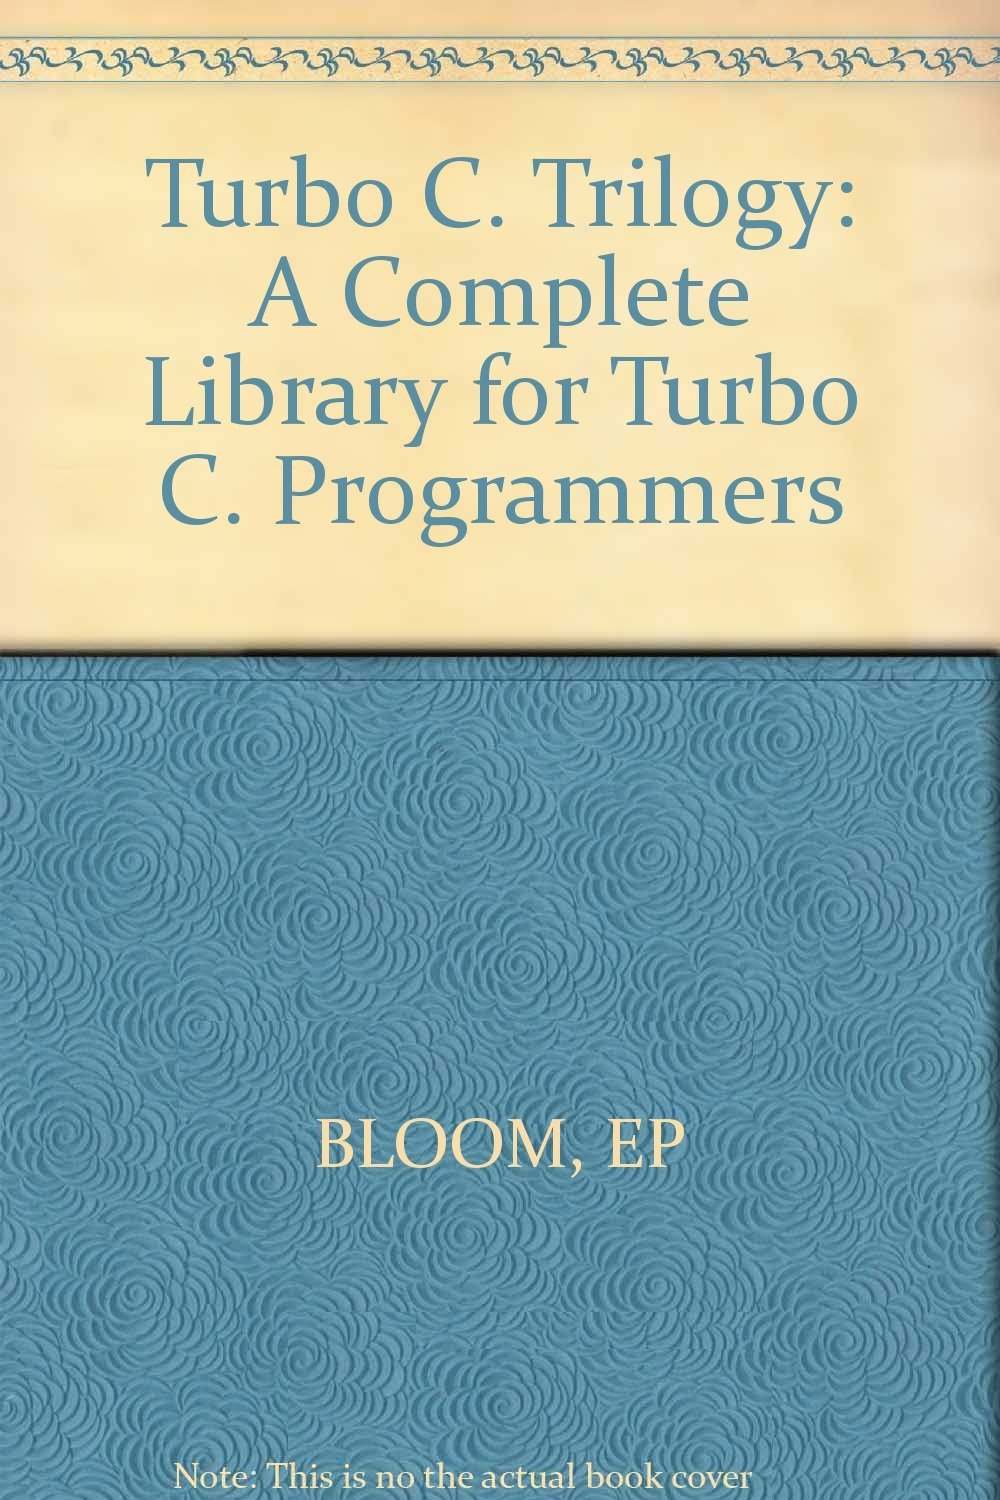 The Turbo C Trilogy: A Complete Library for Turbo C Programmers: Eric P. Bloom: 9780830693702: Amazon.com: Books